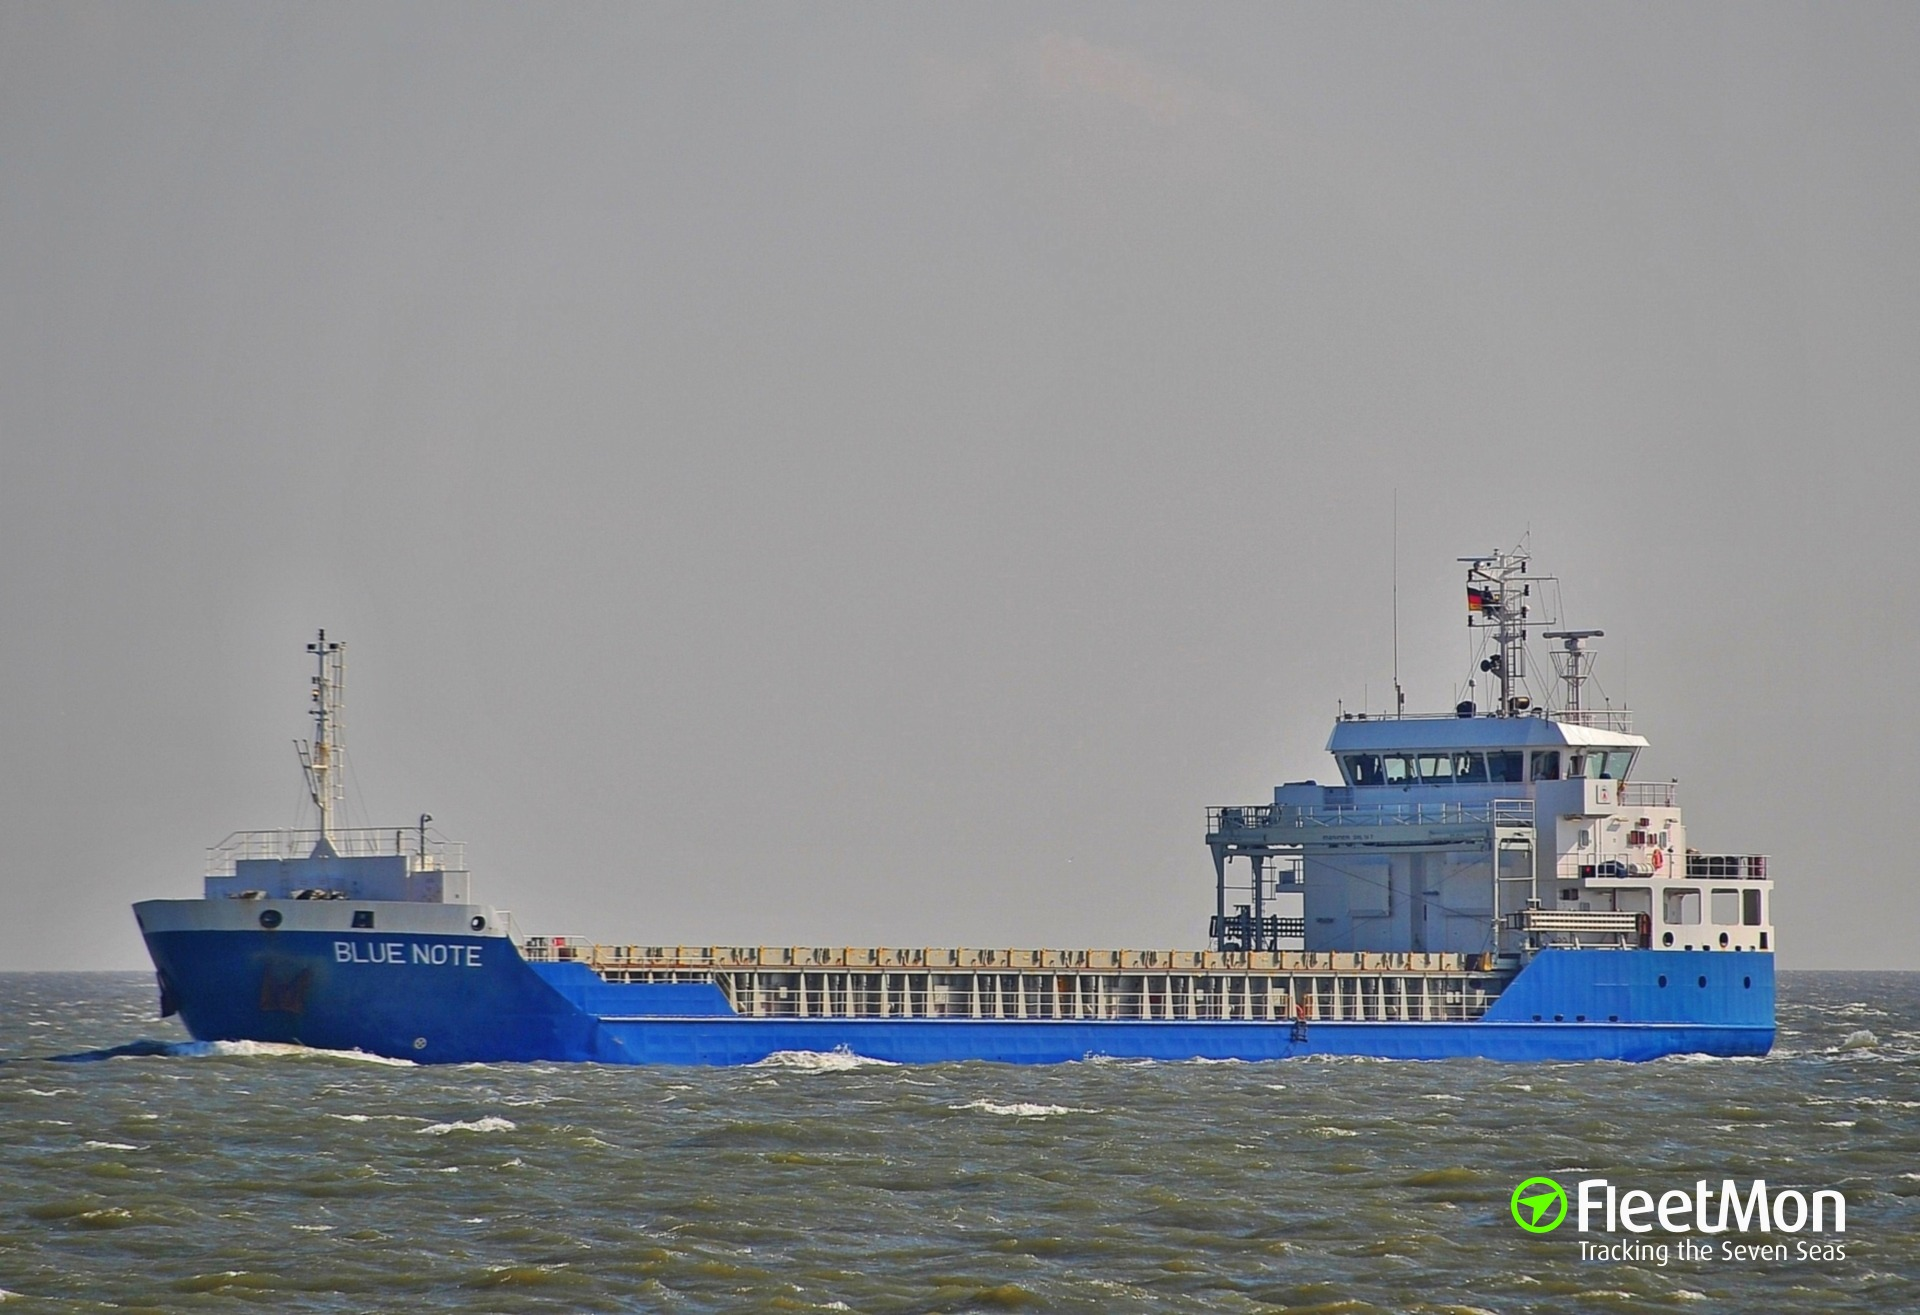 Freighter BLUE NOTE troubled in Aegean Sea in stormy weather